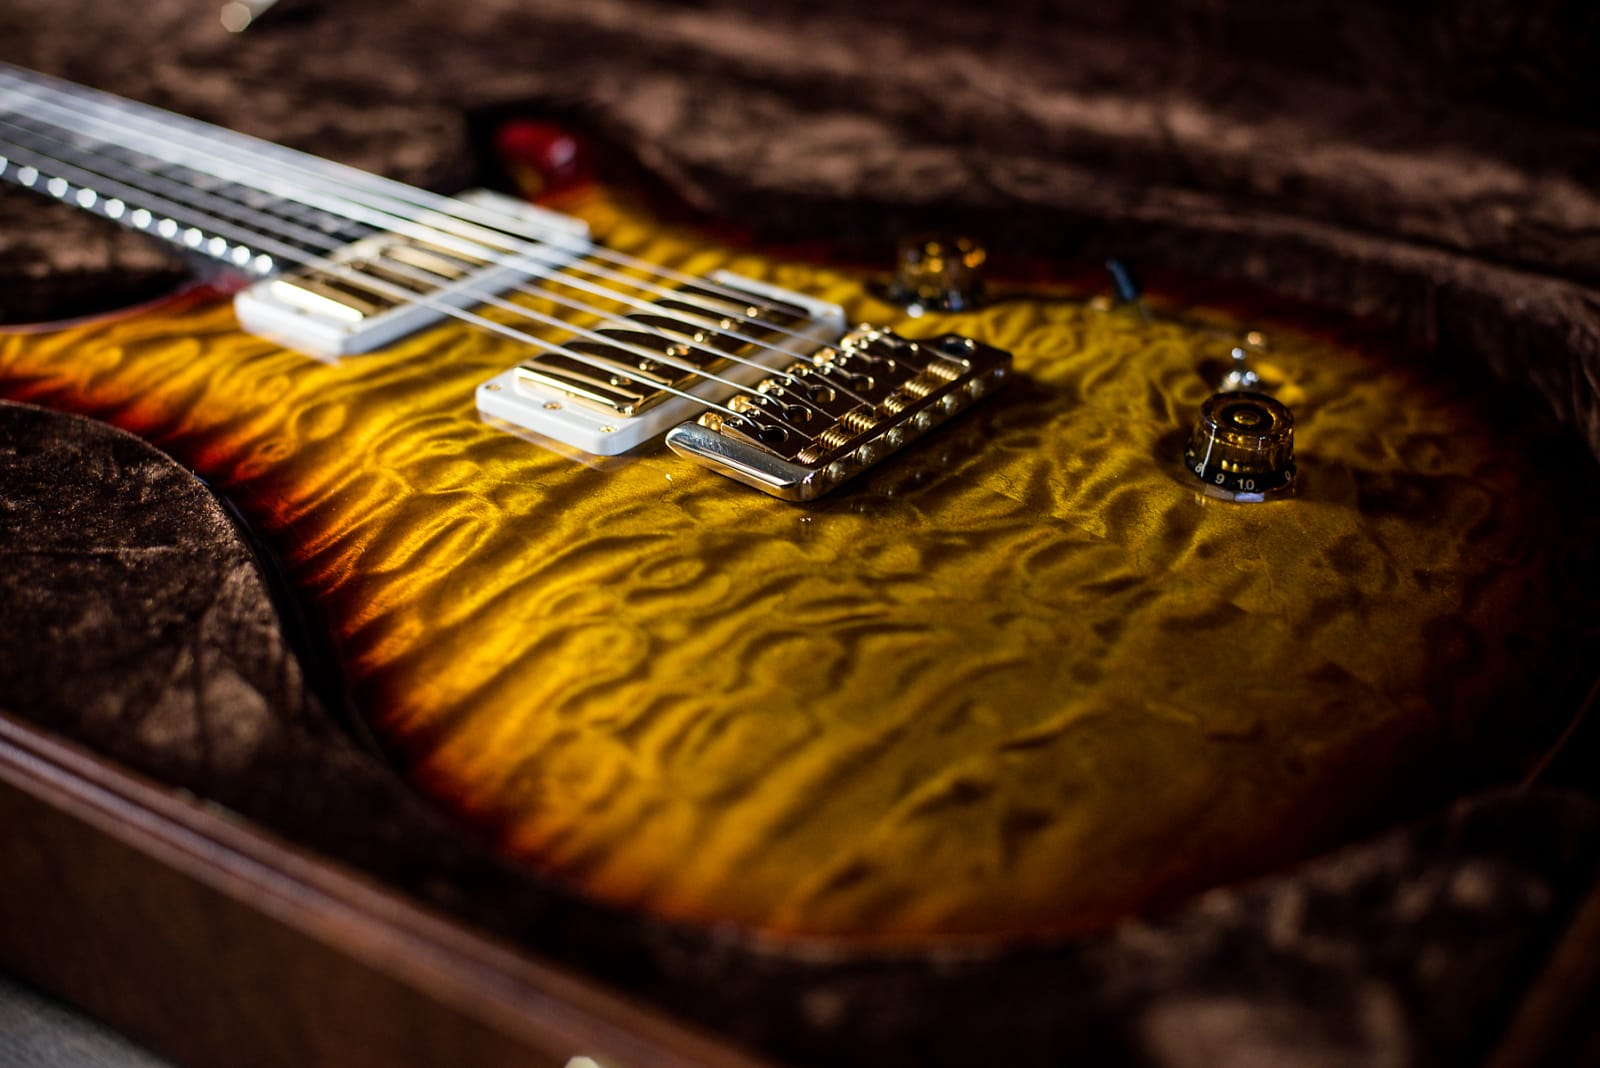 PRS 1 of 1 Private Stock 24/08 Semi Hollow Brazilian Rosewood Neck & Fingerboard, 14kt Gold Inlays